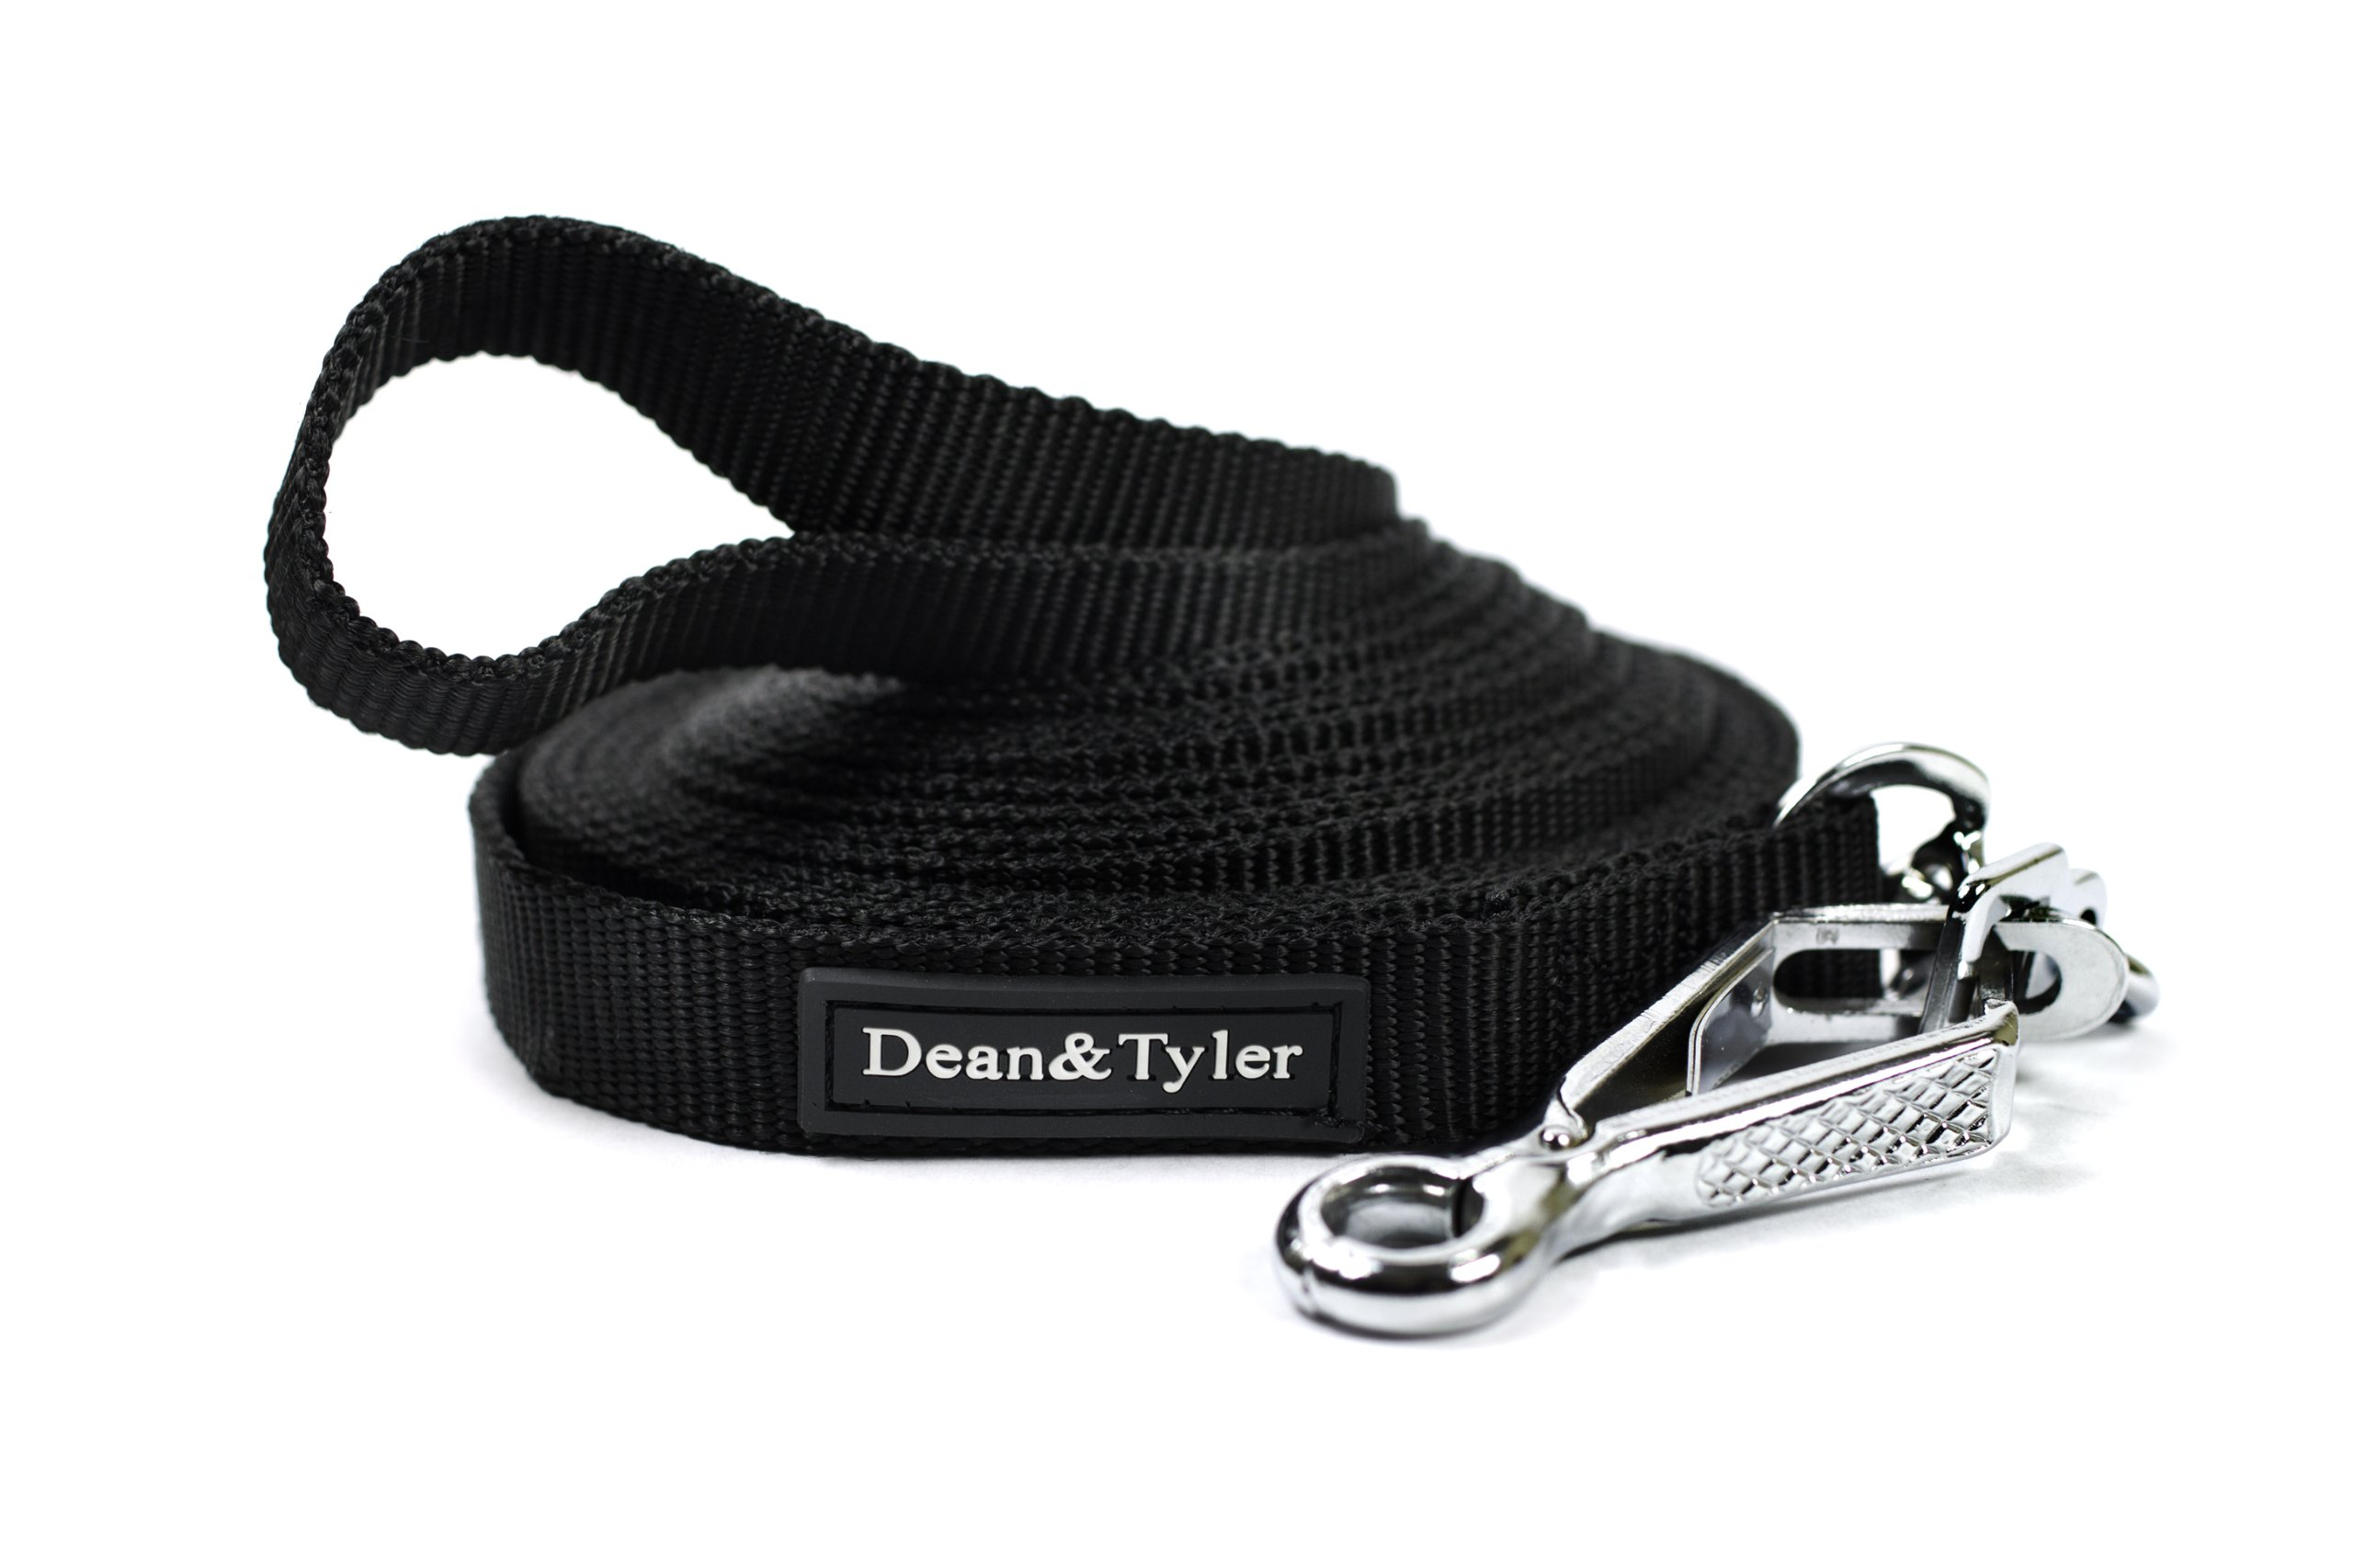 Dean & Tyler Double Ply Nylon Dog Leash with Herm Sprenger Hardware, 35-Feet by 3/4-Inch, Black